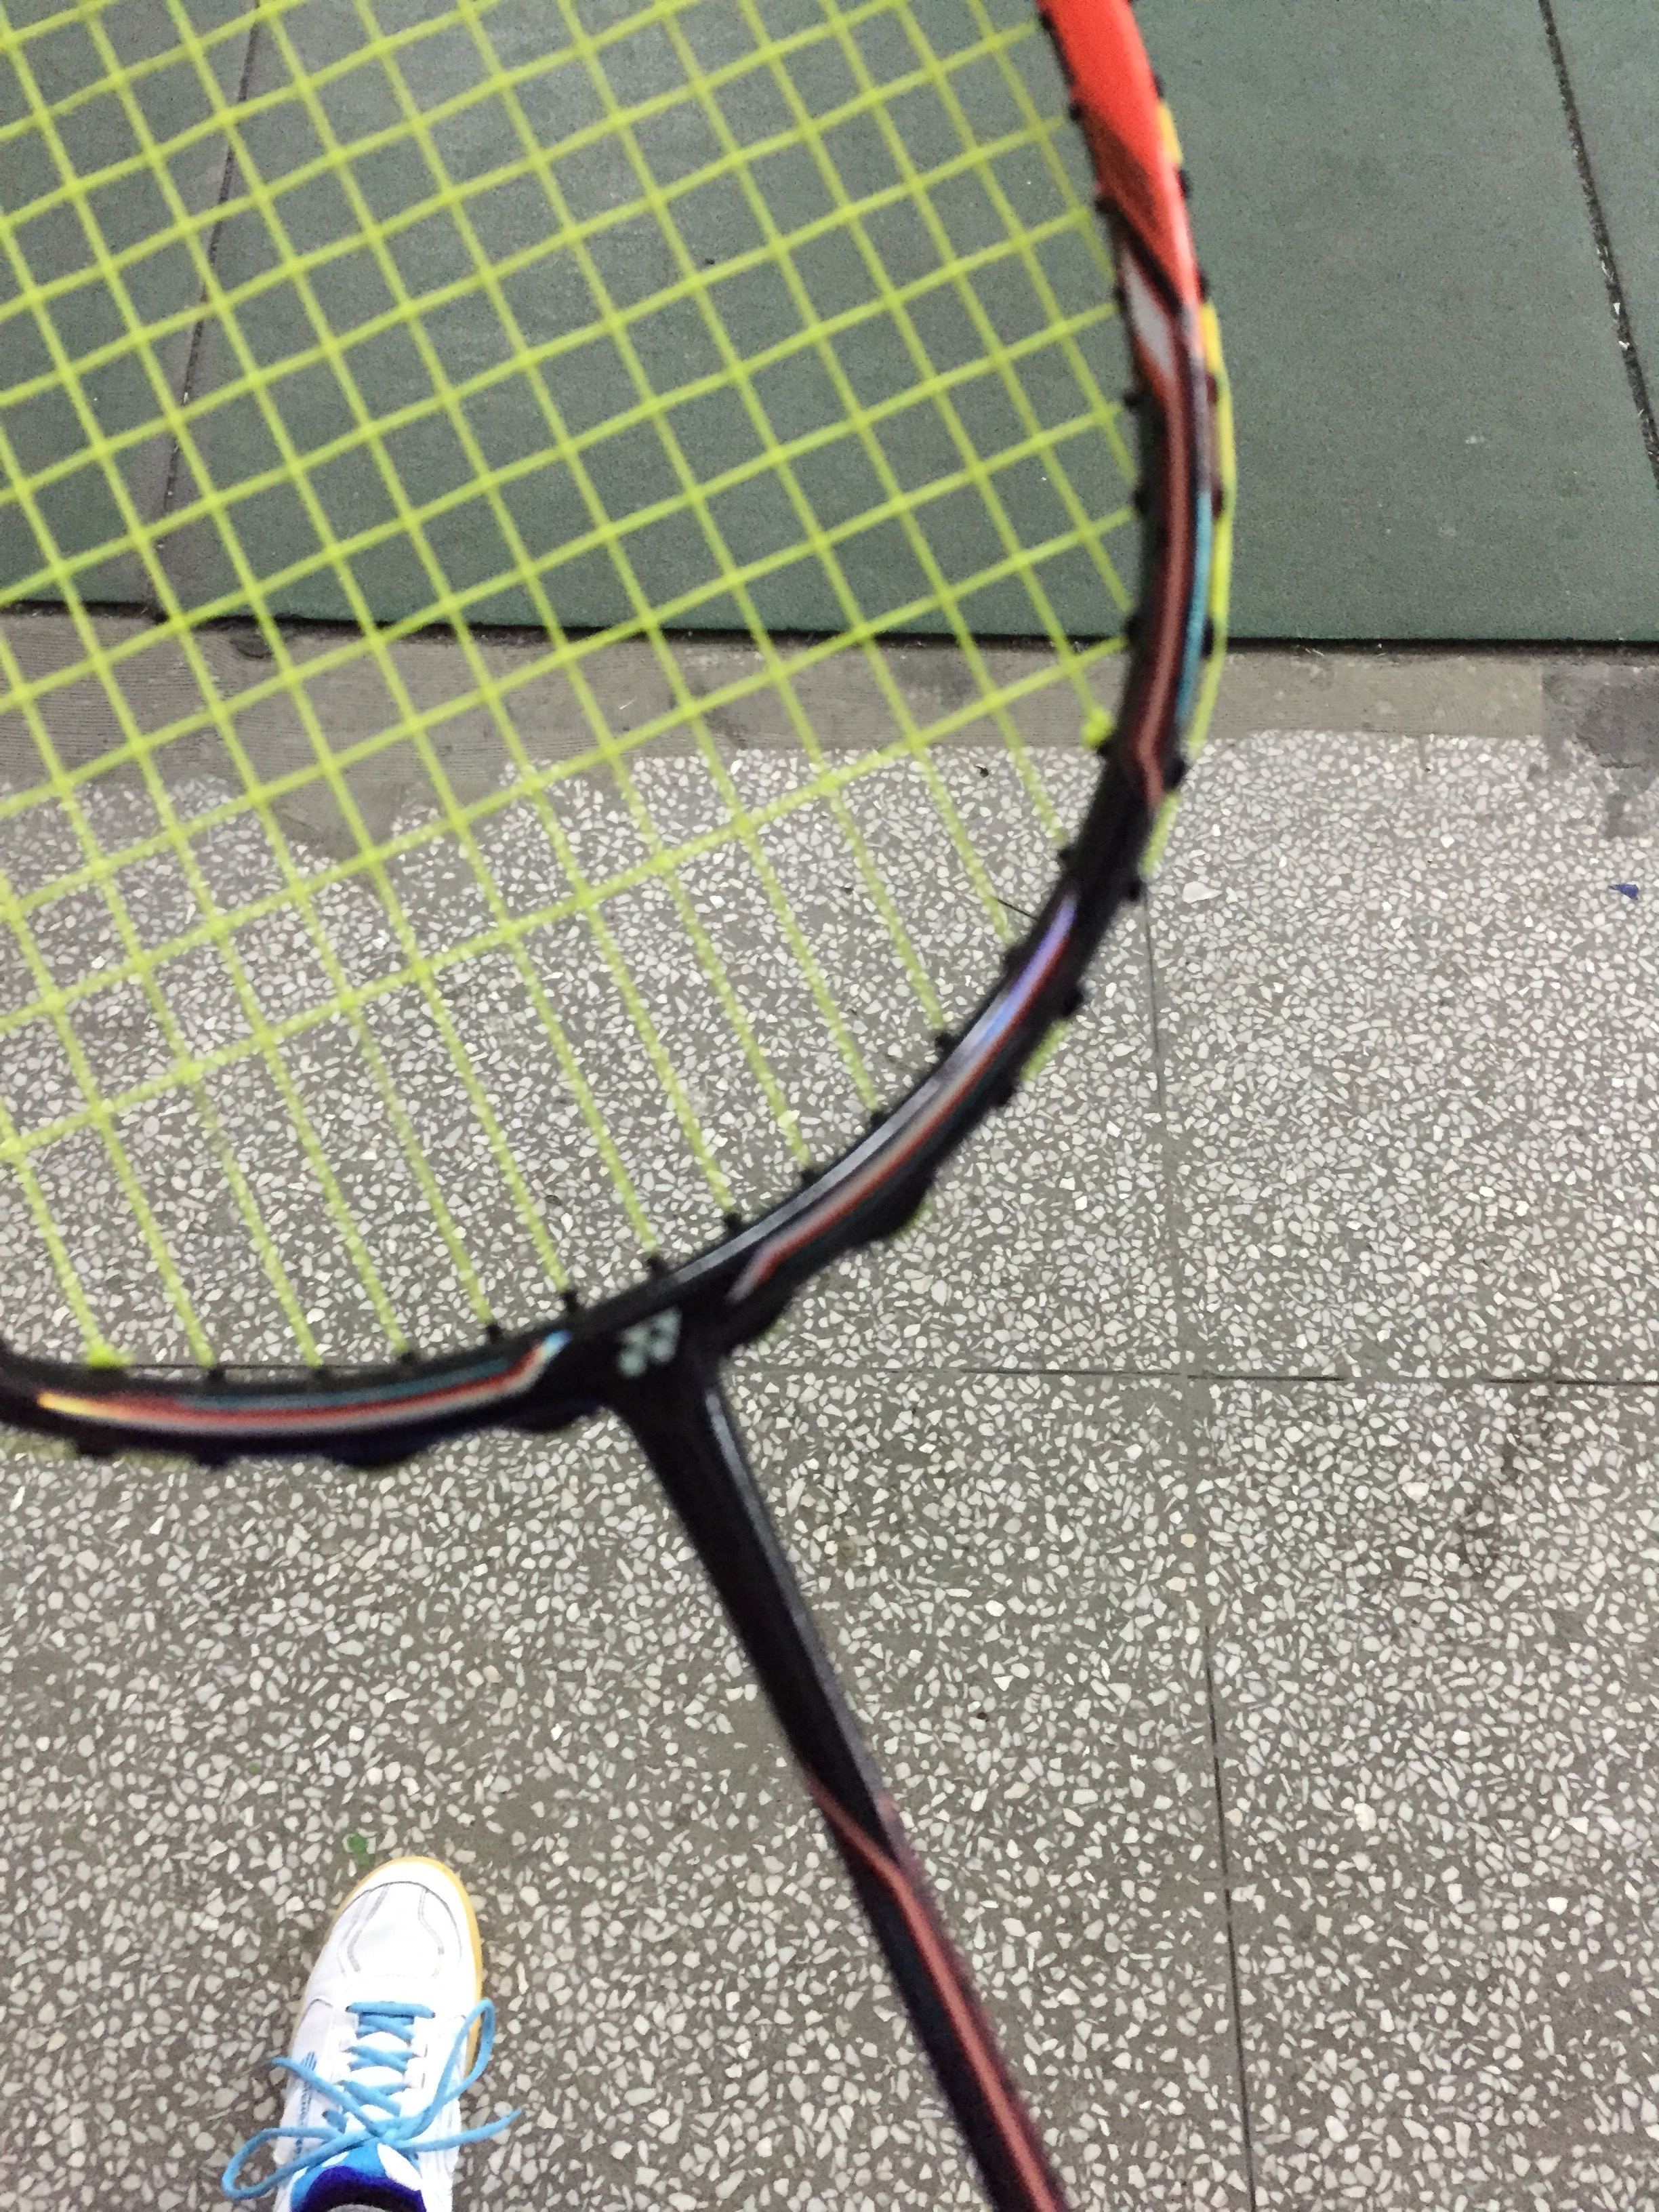 My phone wouldn't focus o the slim racket handle, but this was the racket I used on thursday. Almost $200!!